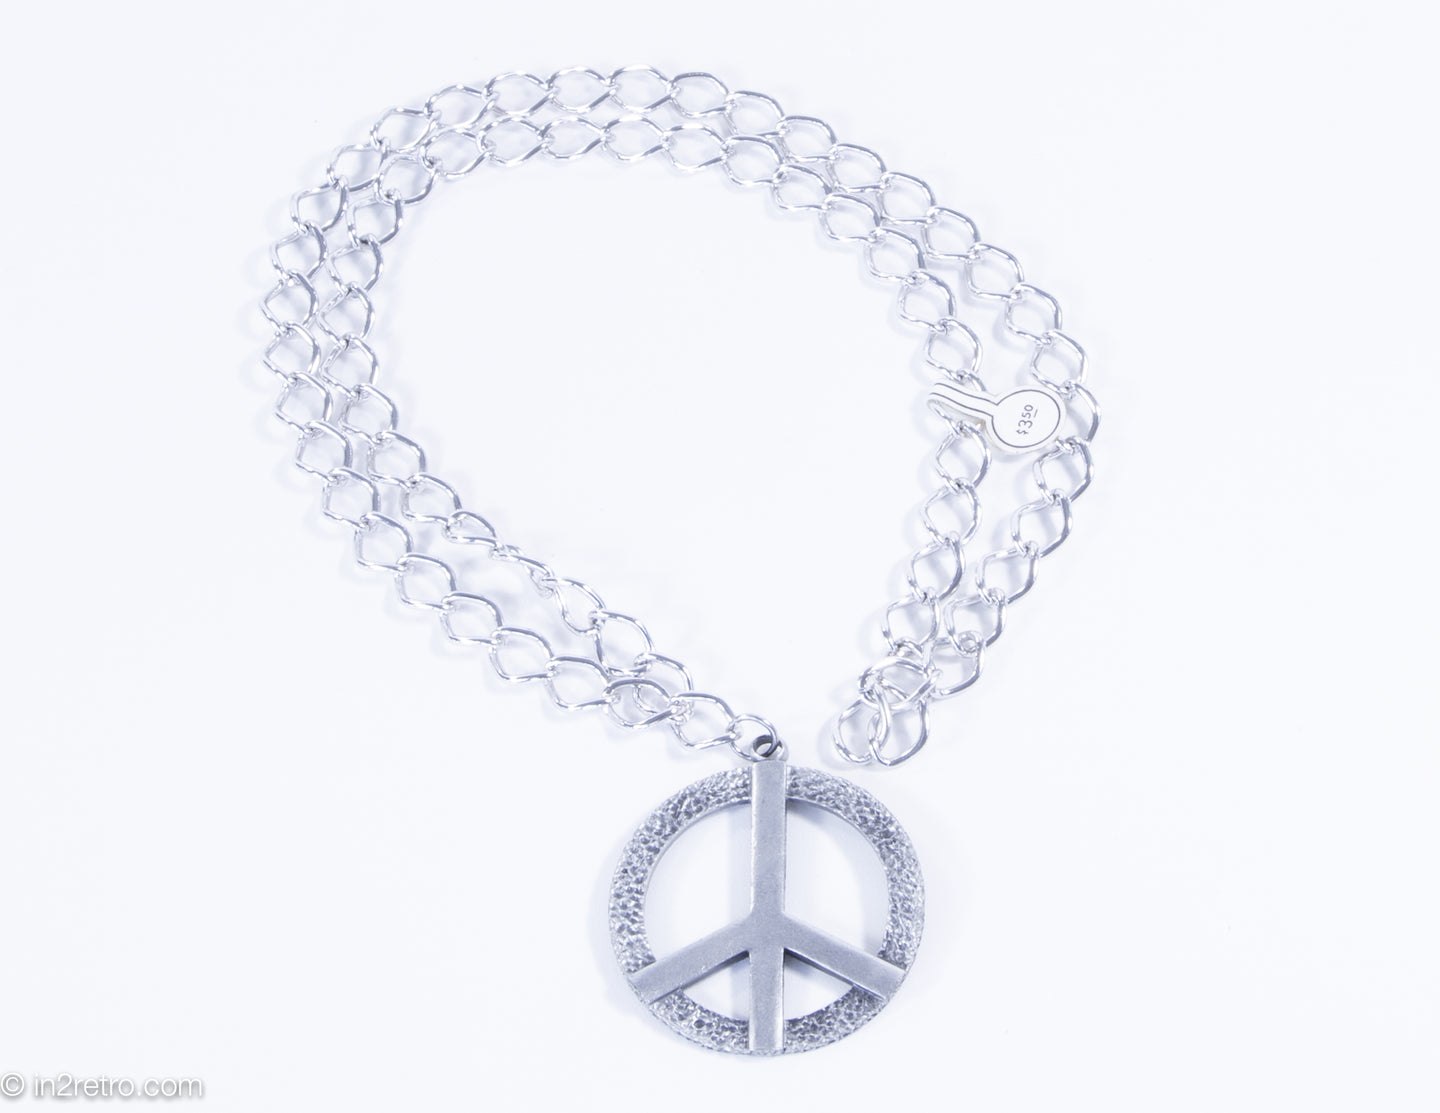 VINTAGE SWANK SILVERTONE PEACE SIGN METAL CHARM/MEDALLION ON CHAIN NECKLACE